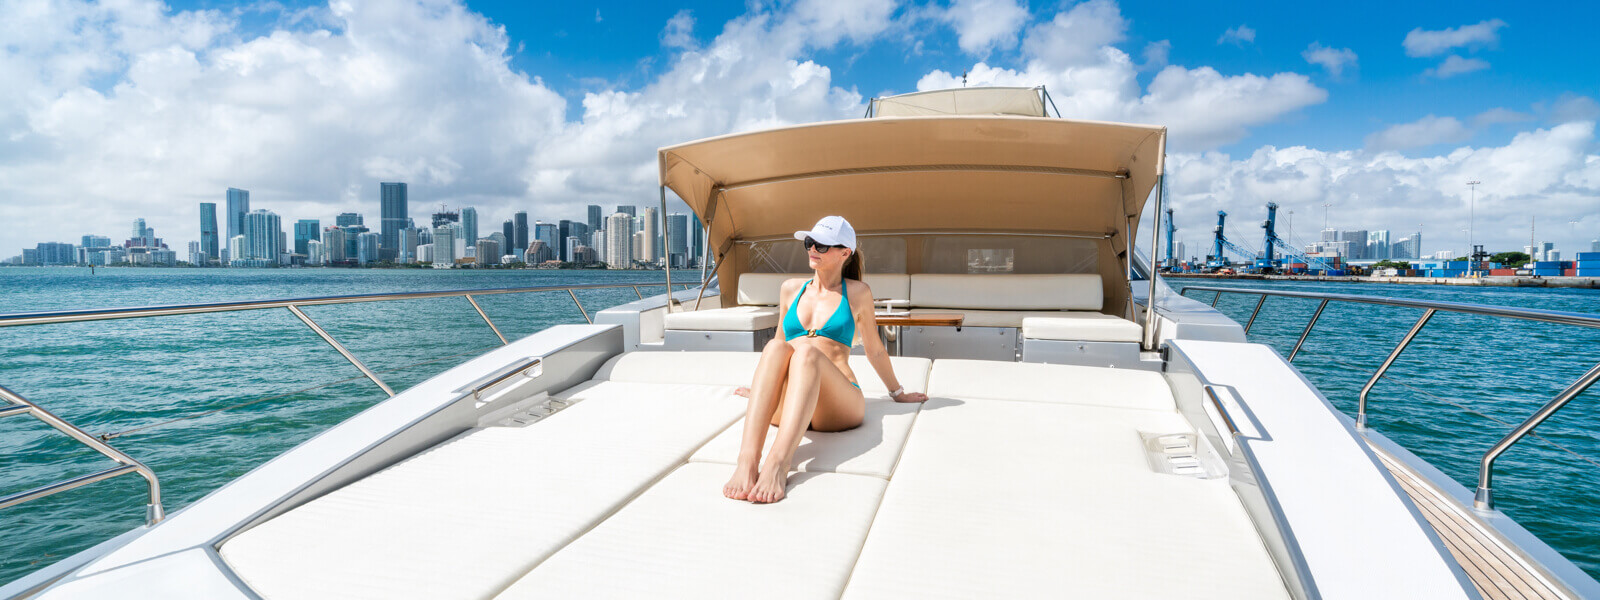 YachtLife Single Day Charters - Miami